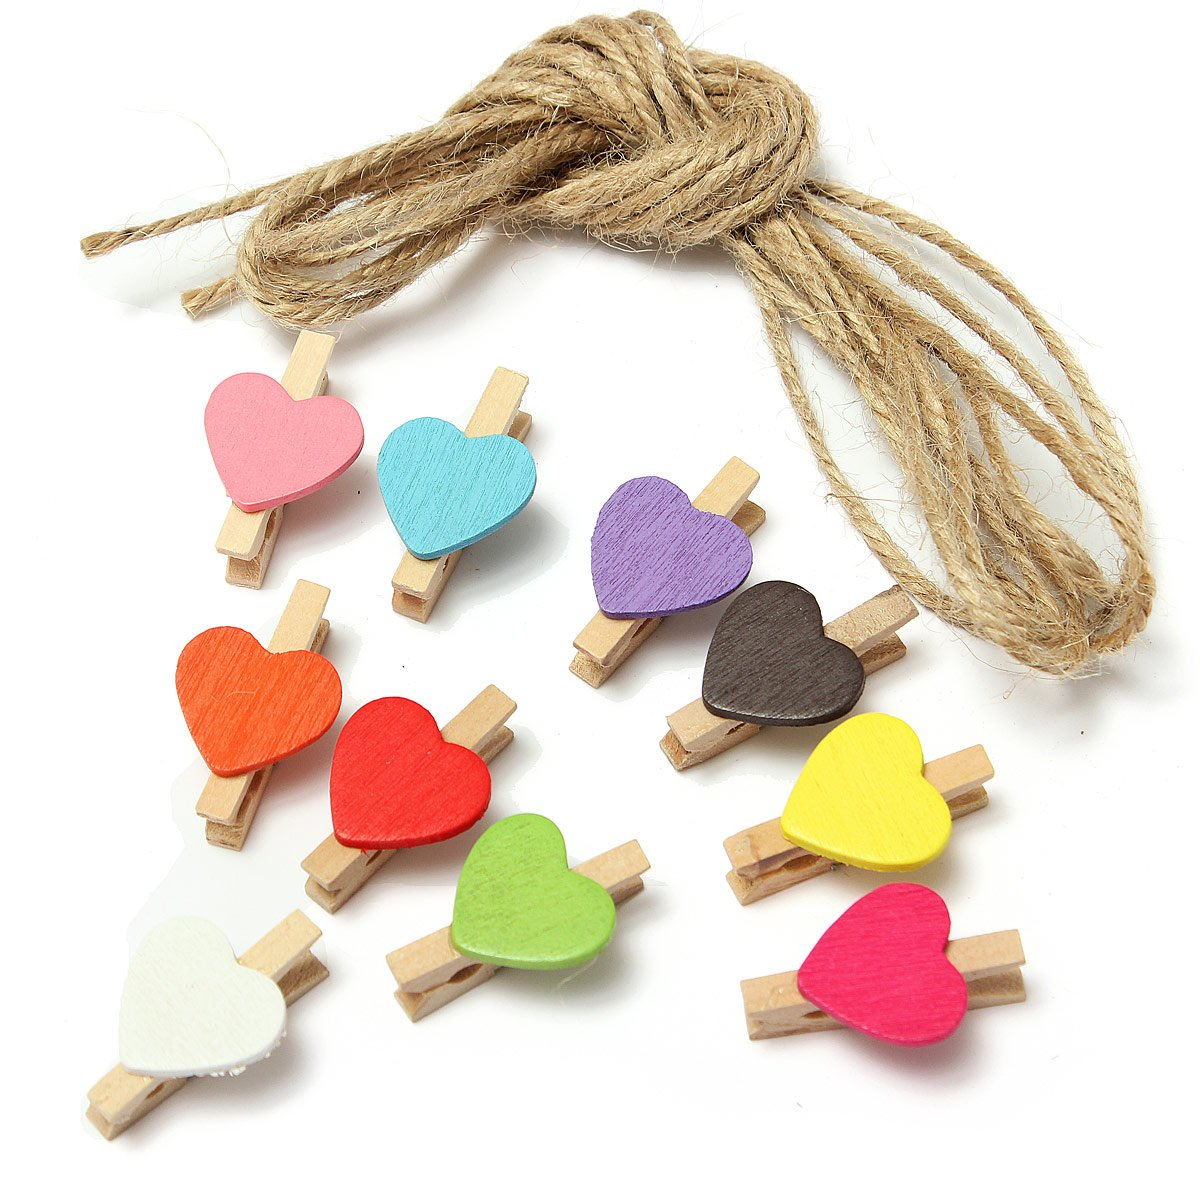 HOT GCZW-10Pcs Mini Heart Photo Memo Clips Wooden Pegs Crafts Party Favor Hanging